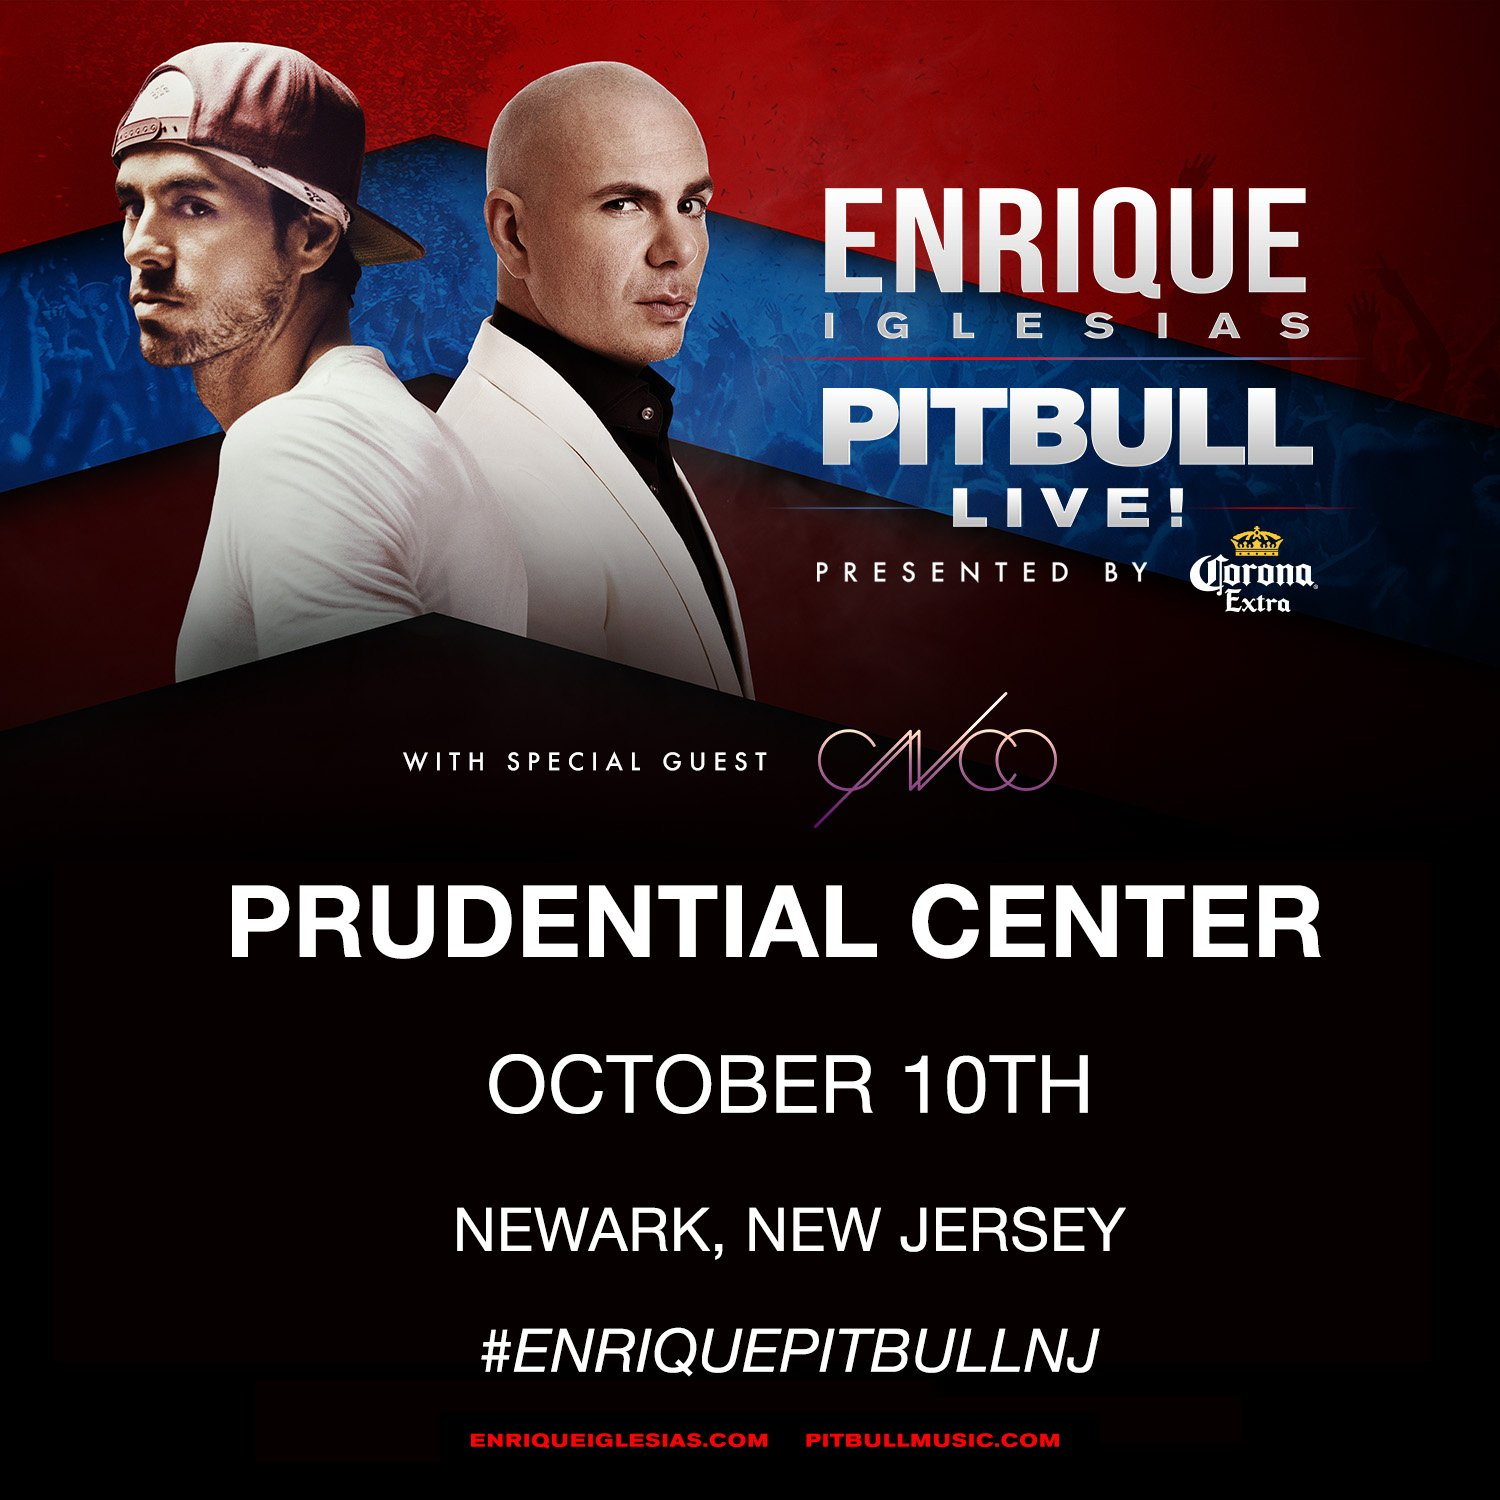 Share with https://t.co/X6n6Lpc8F8 and you could win a pair of tickets to Prudential Center on Oct. 10th. https://t.co/eP11NrkWCV